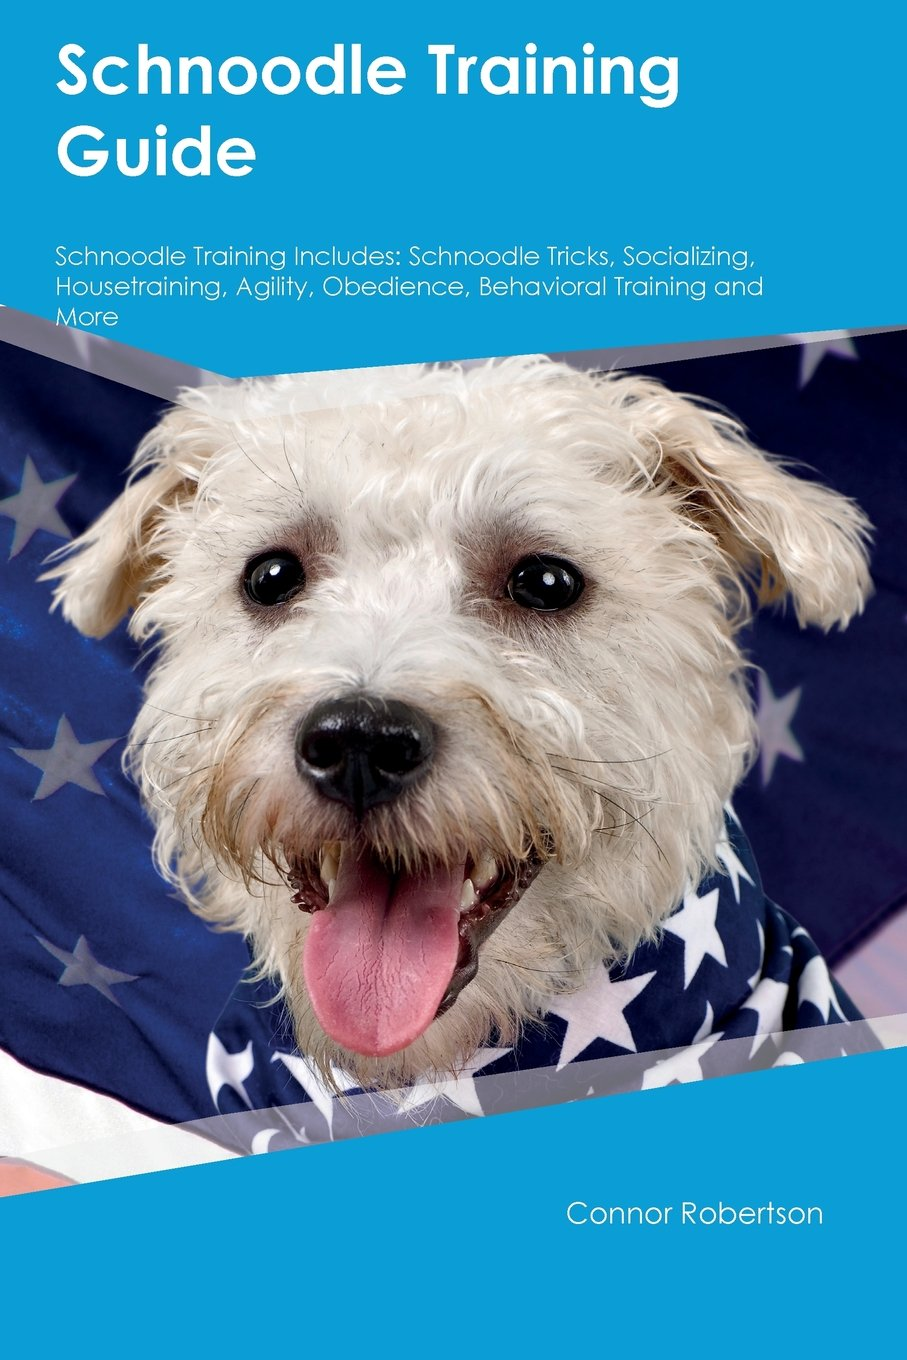 Download Schnoodle Training Guide Schnoodle Training Includes: Schnoodle Tricks, Socializing, Housetraining, Agility, Obedience, Behavioral Training and More ebook